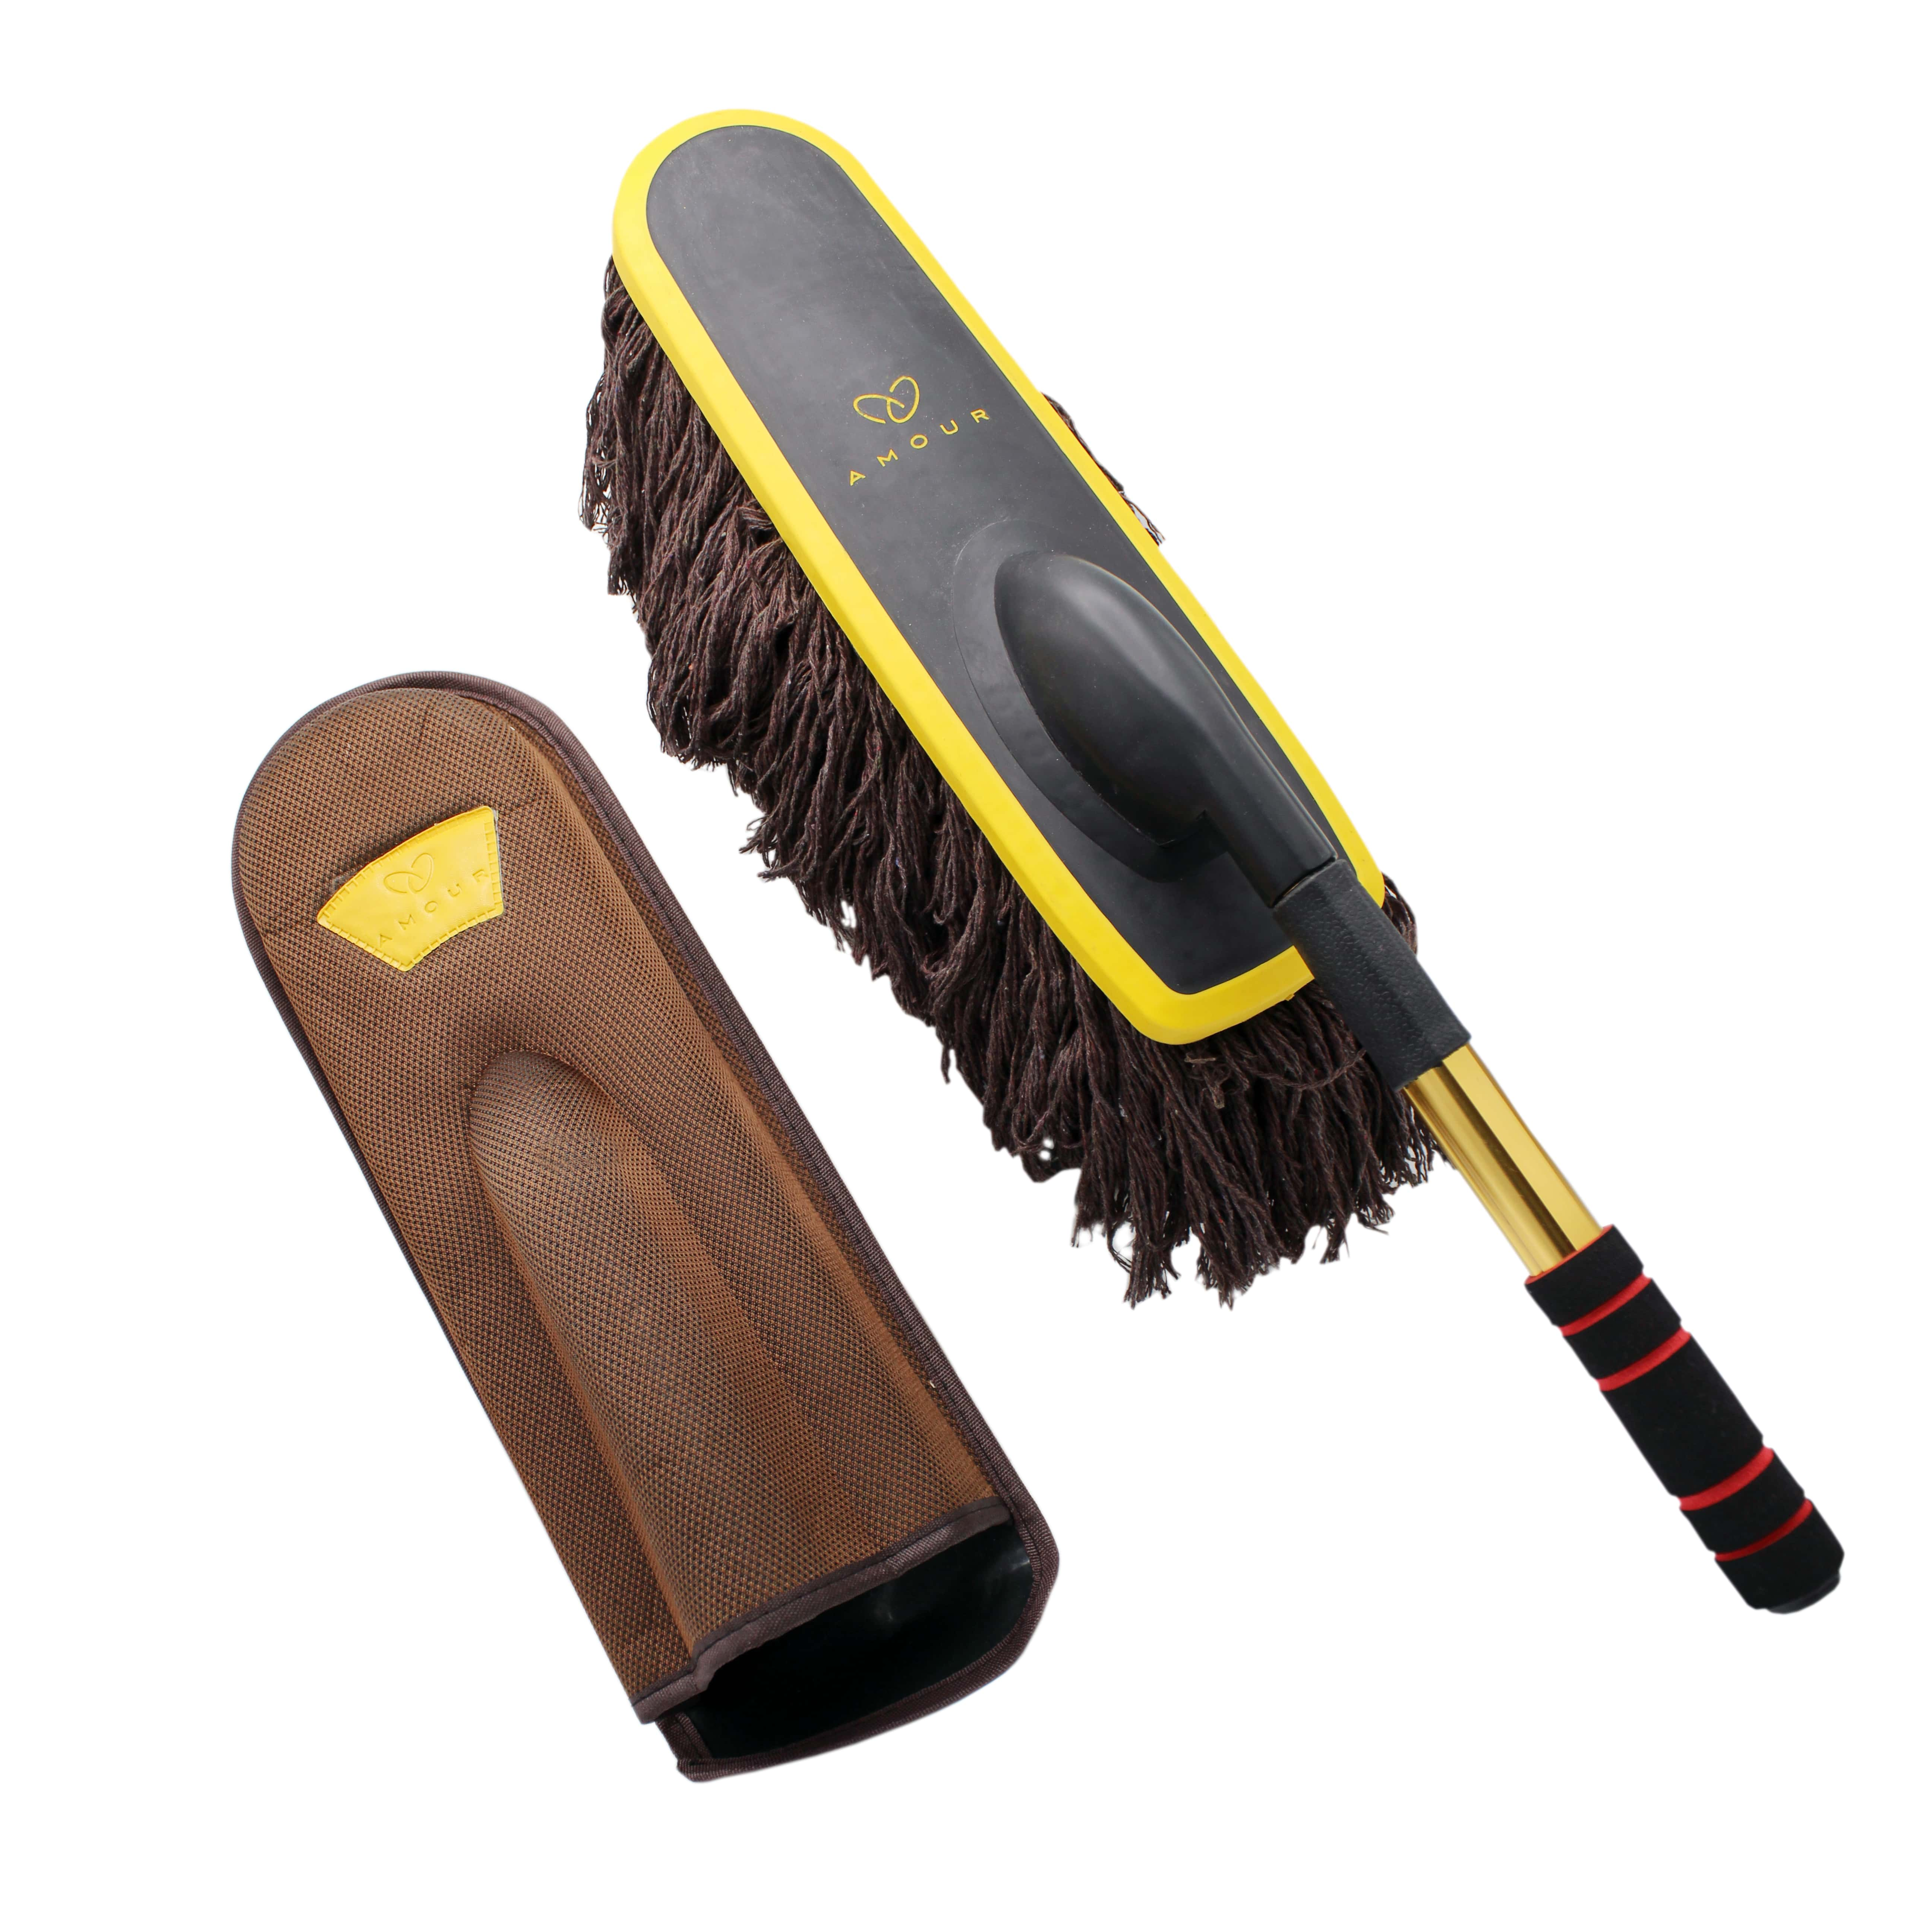 Amour | Amour Super Soft Microfiber Car Dash Duster Brush for Car Cleaning Home Kitchen Computer Cleaning Brush Dusting Tool with Case (Multi)